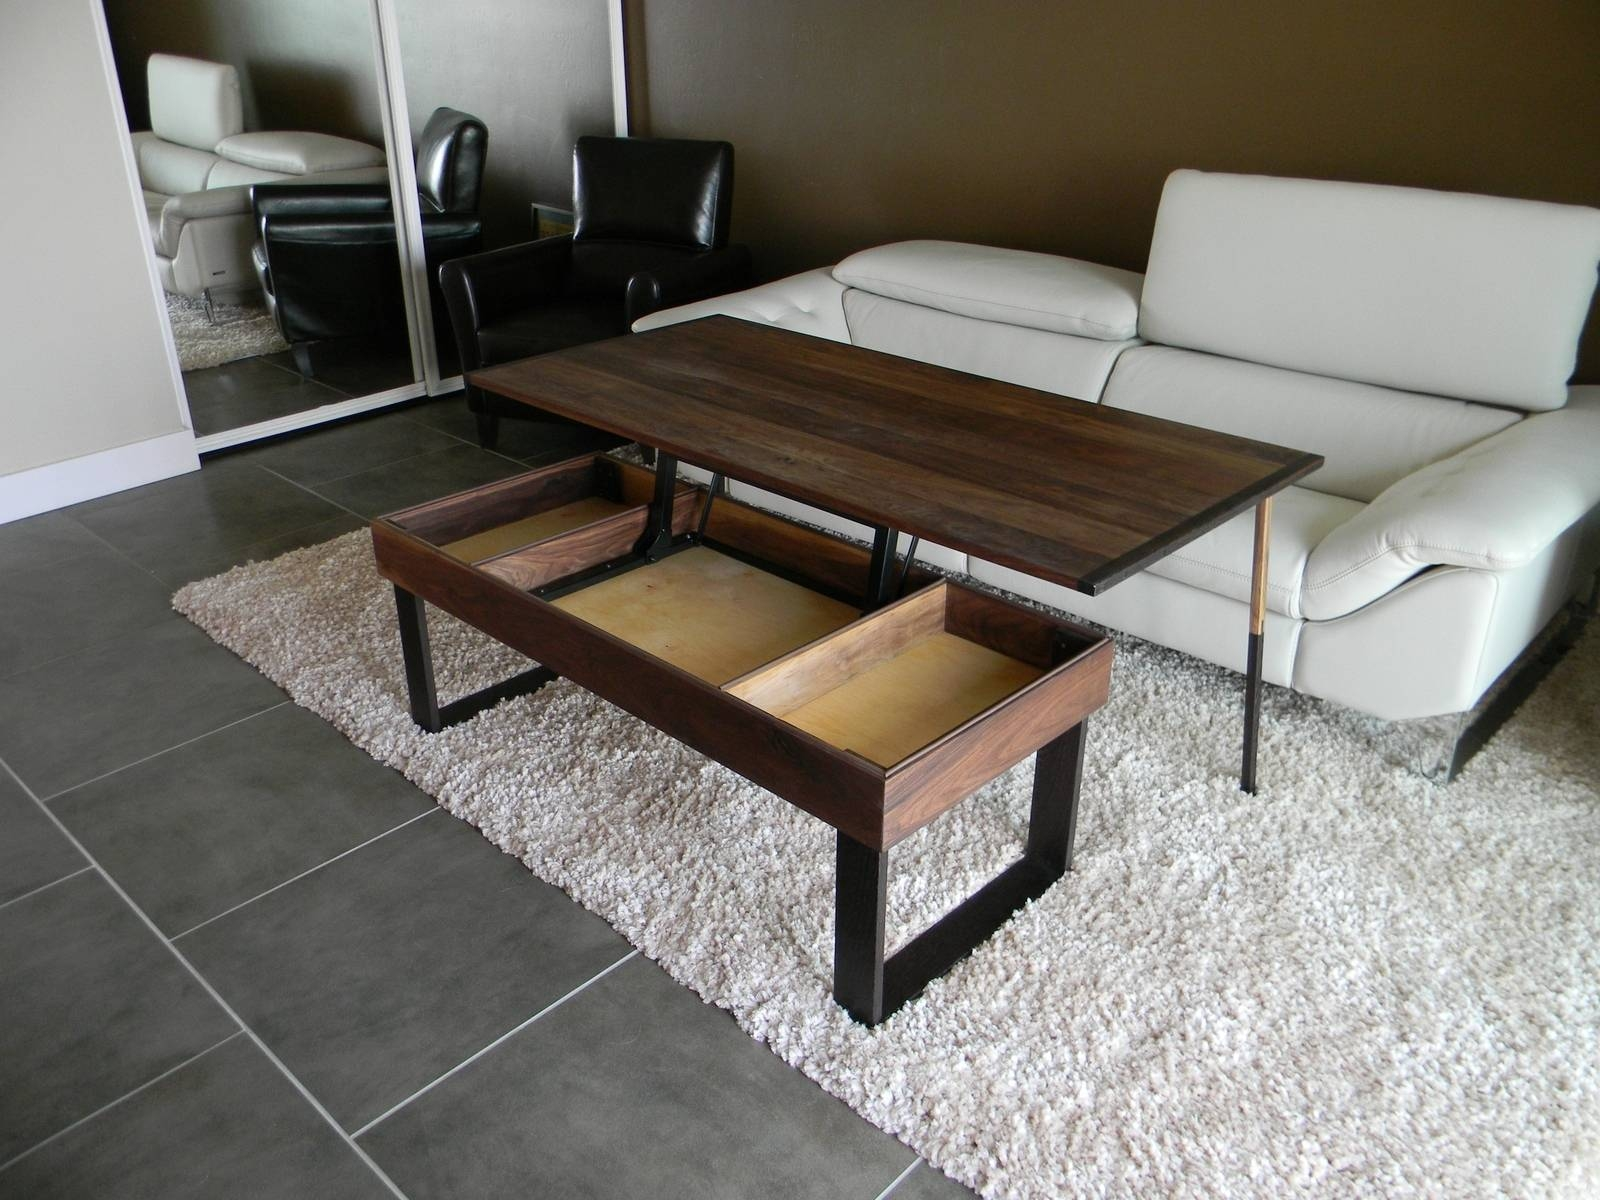 Quality Coffee Table That Lifts Up – Lift Top Coffee Table Amazon with Lifting Coffee Tables (Image 24 of 30)